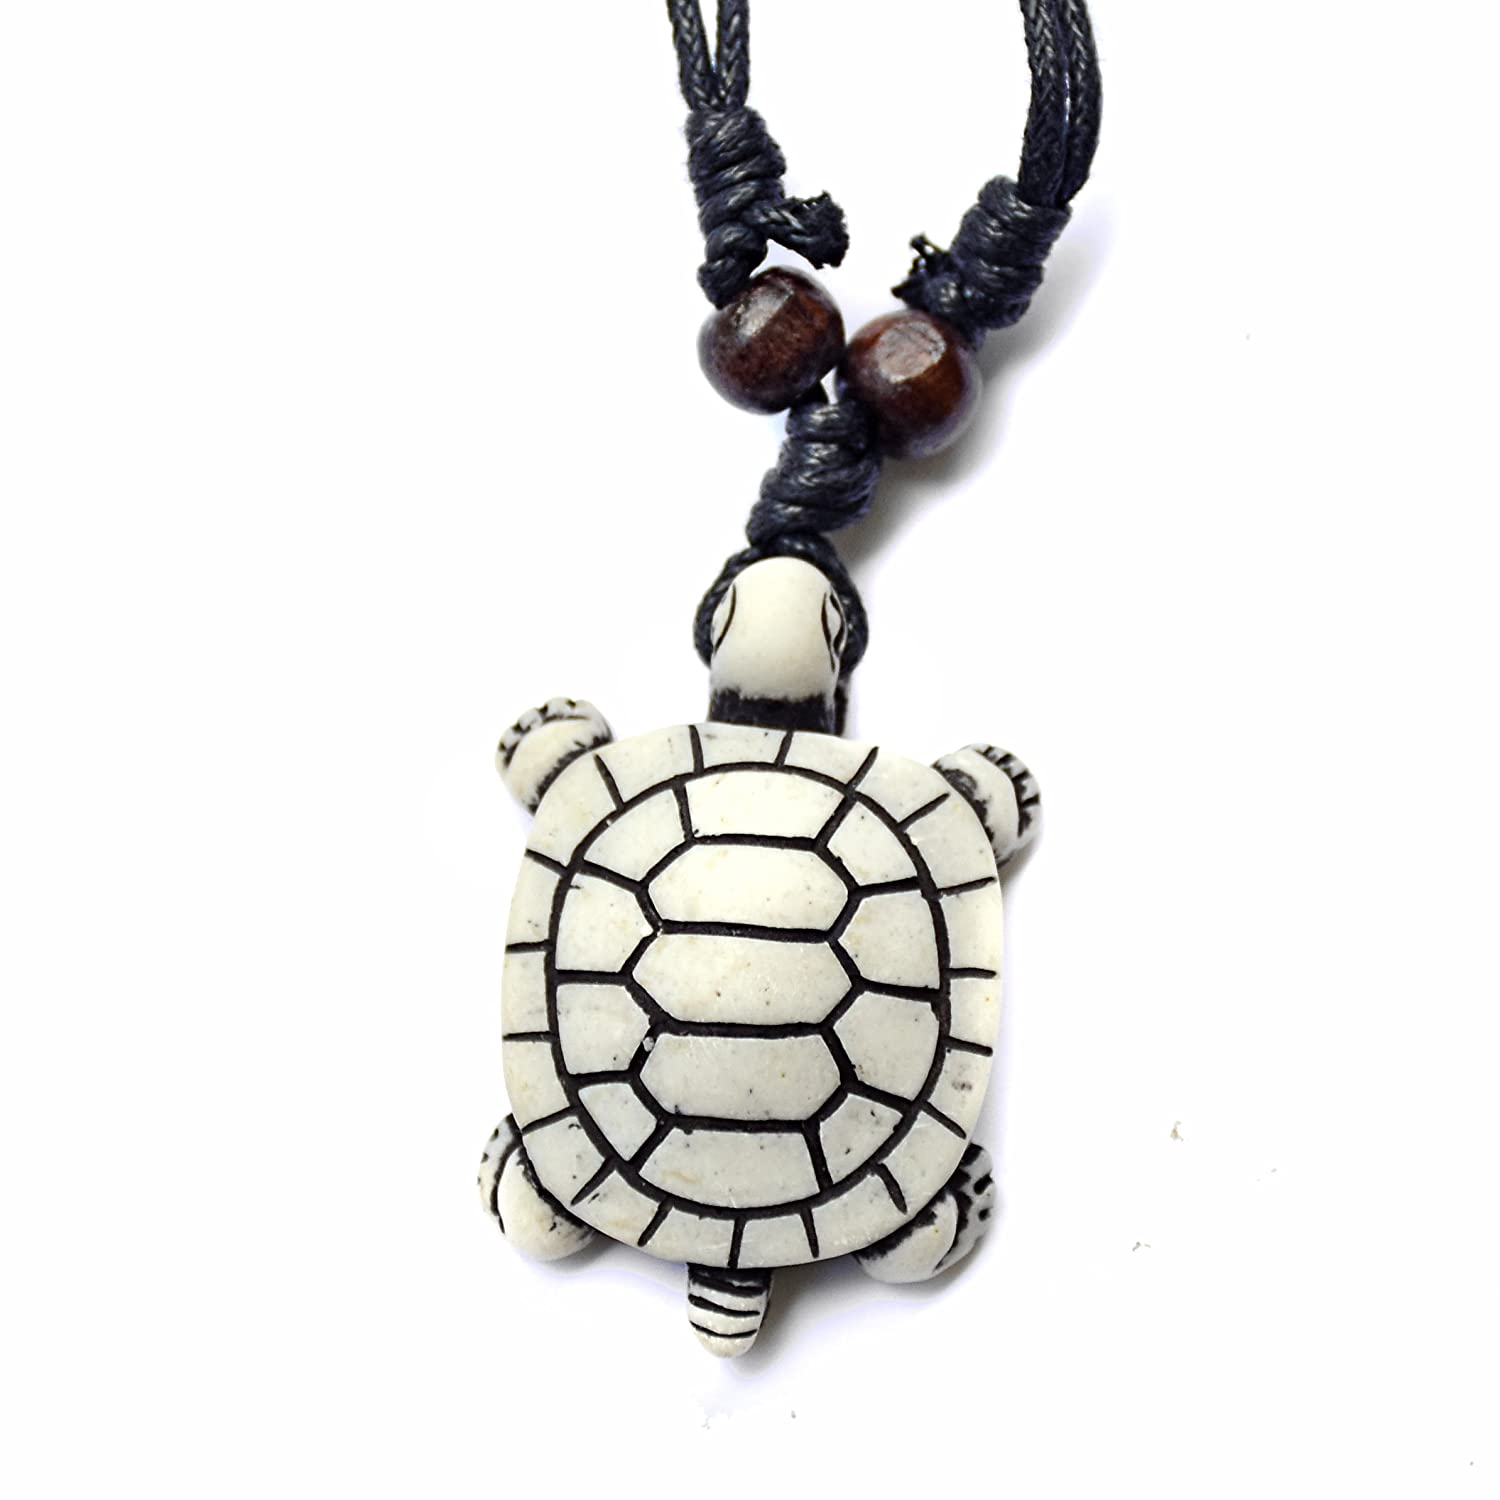 Honu Turtle Amulet Pirate Pendant Necklace